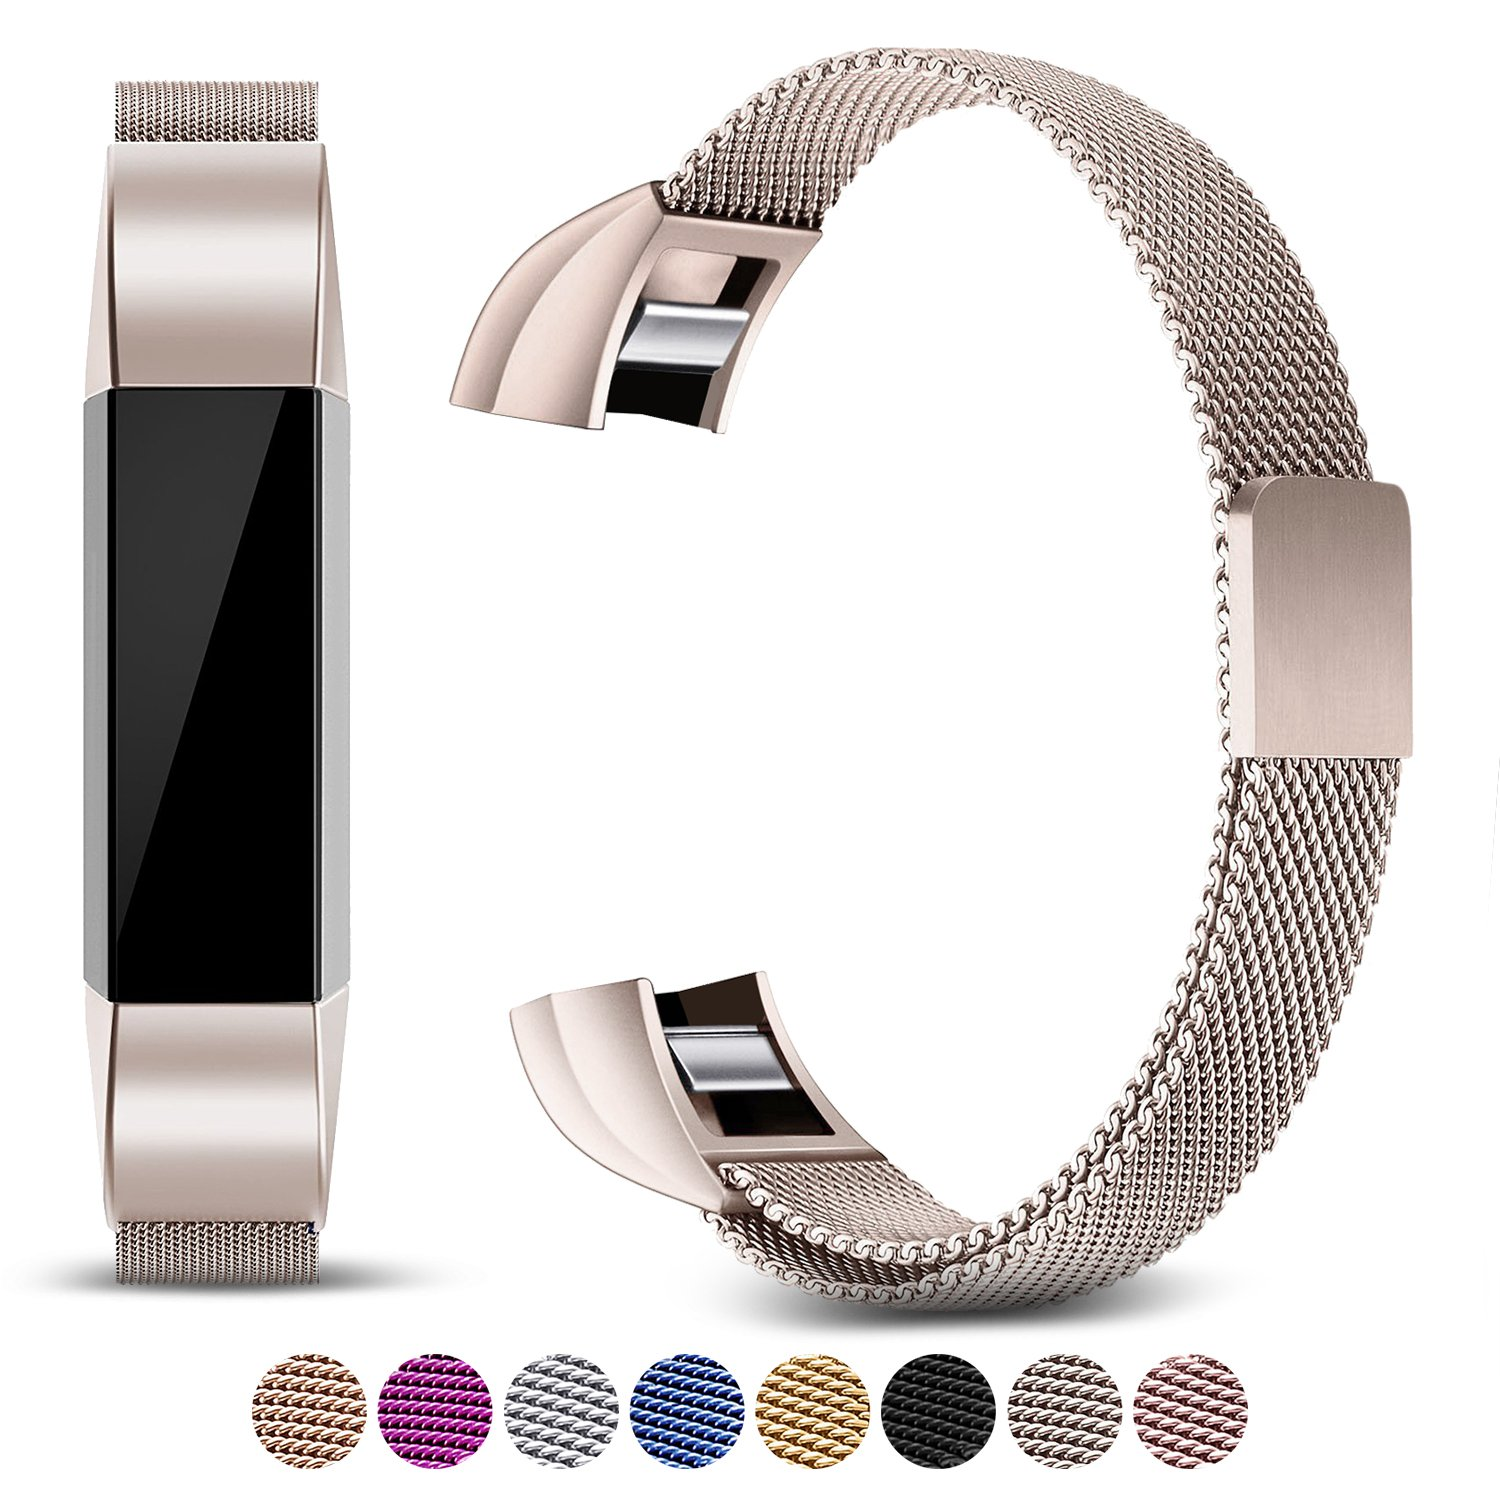 Konikit For Fitbit Alta and Alta HR Magnetic Bands, Band Milanese Loop Stainless Steel Metal Replacement Bracelet Strap, Wristbands Accessories for Women Men (Champagne)